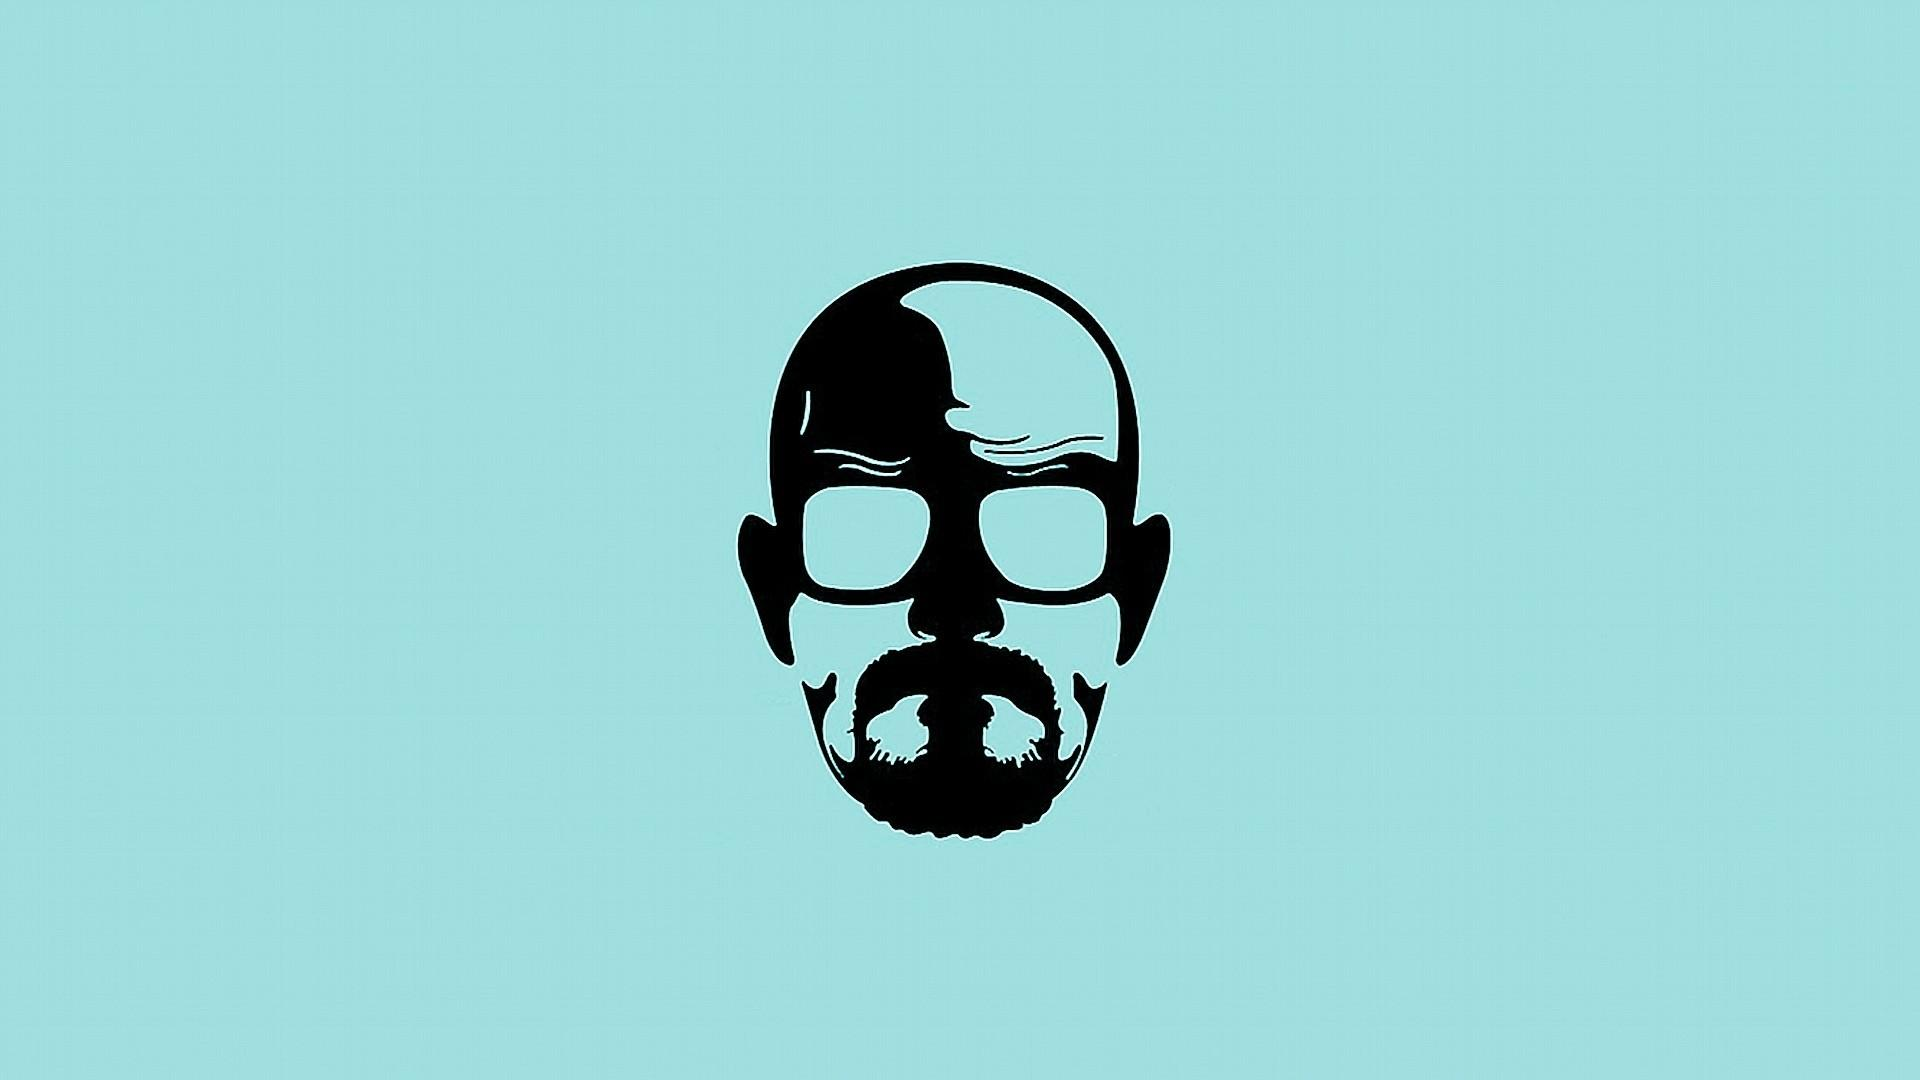 Blue minimalistic breaking bad walter white simple background wallpaper